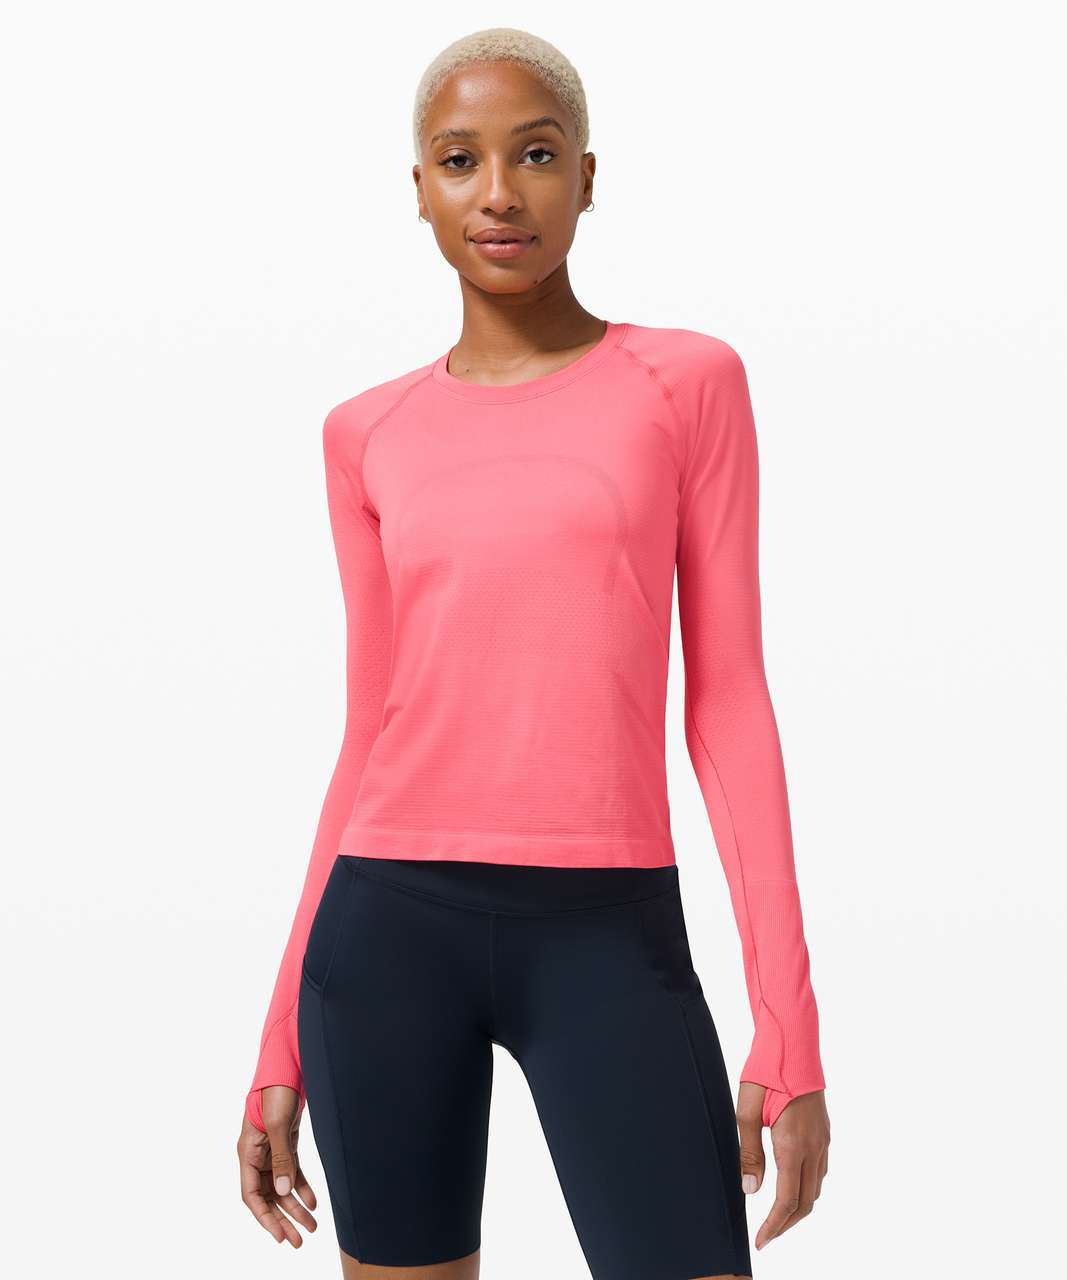 Lululemon Swiftly Tech Long Sleeve 2.0 *Race Length - Guava Pink / Guava Pink